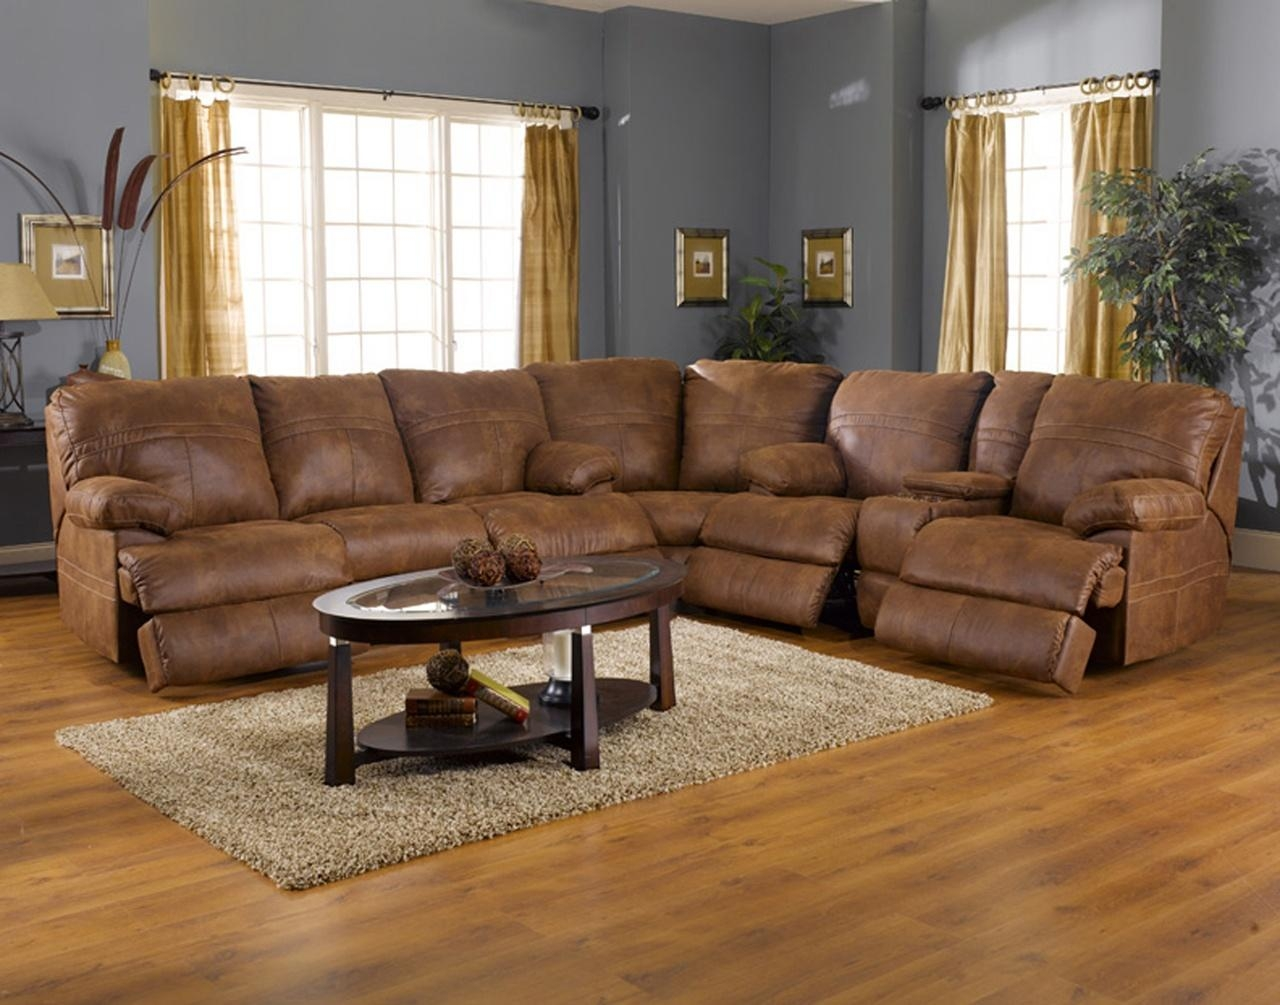 Leather Reclining Sectional Sofa Bed – Reclining Sectional Sofas In Recliner Sectional Sofas (Image 13 of 22)